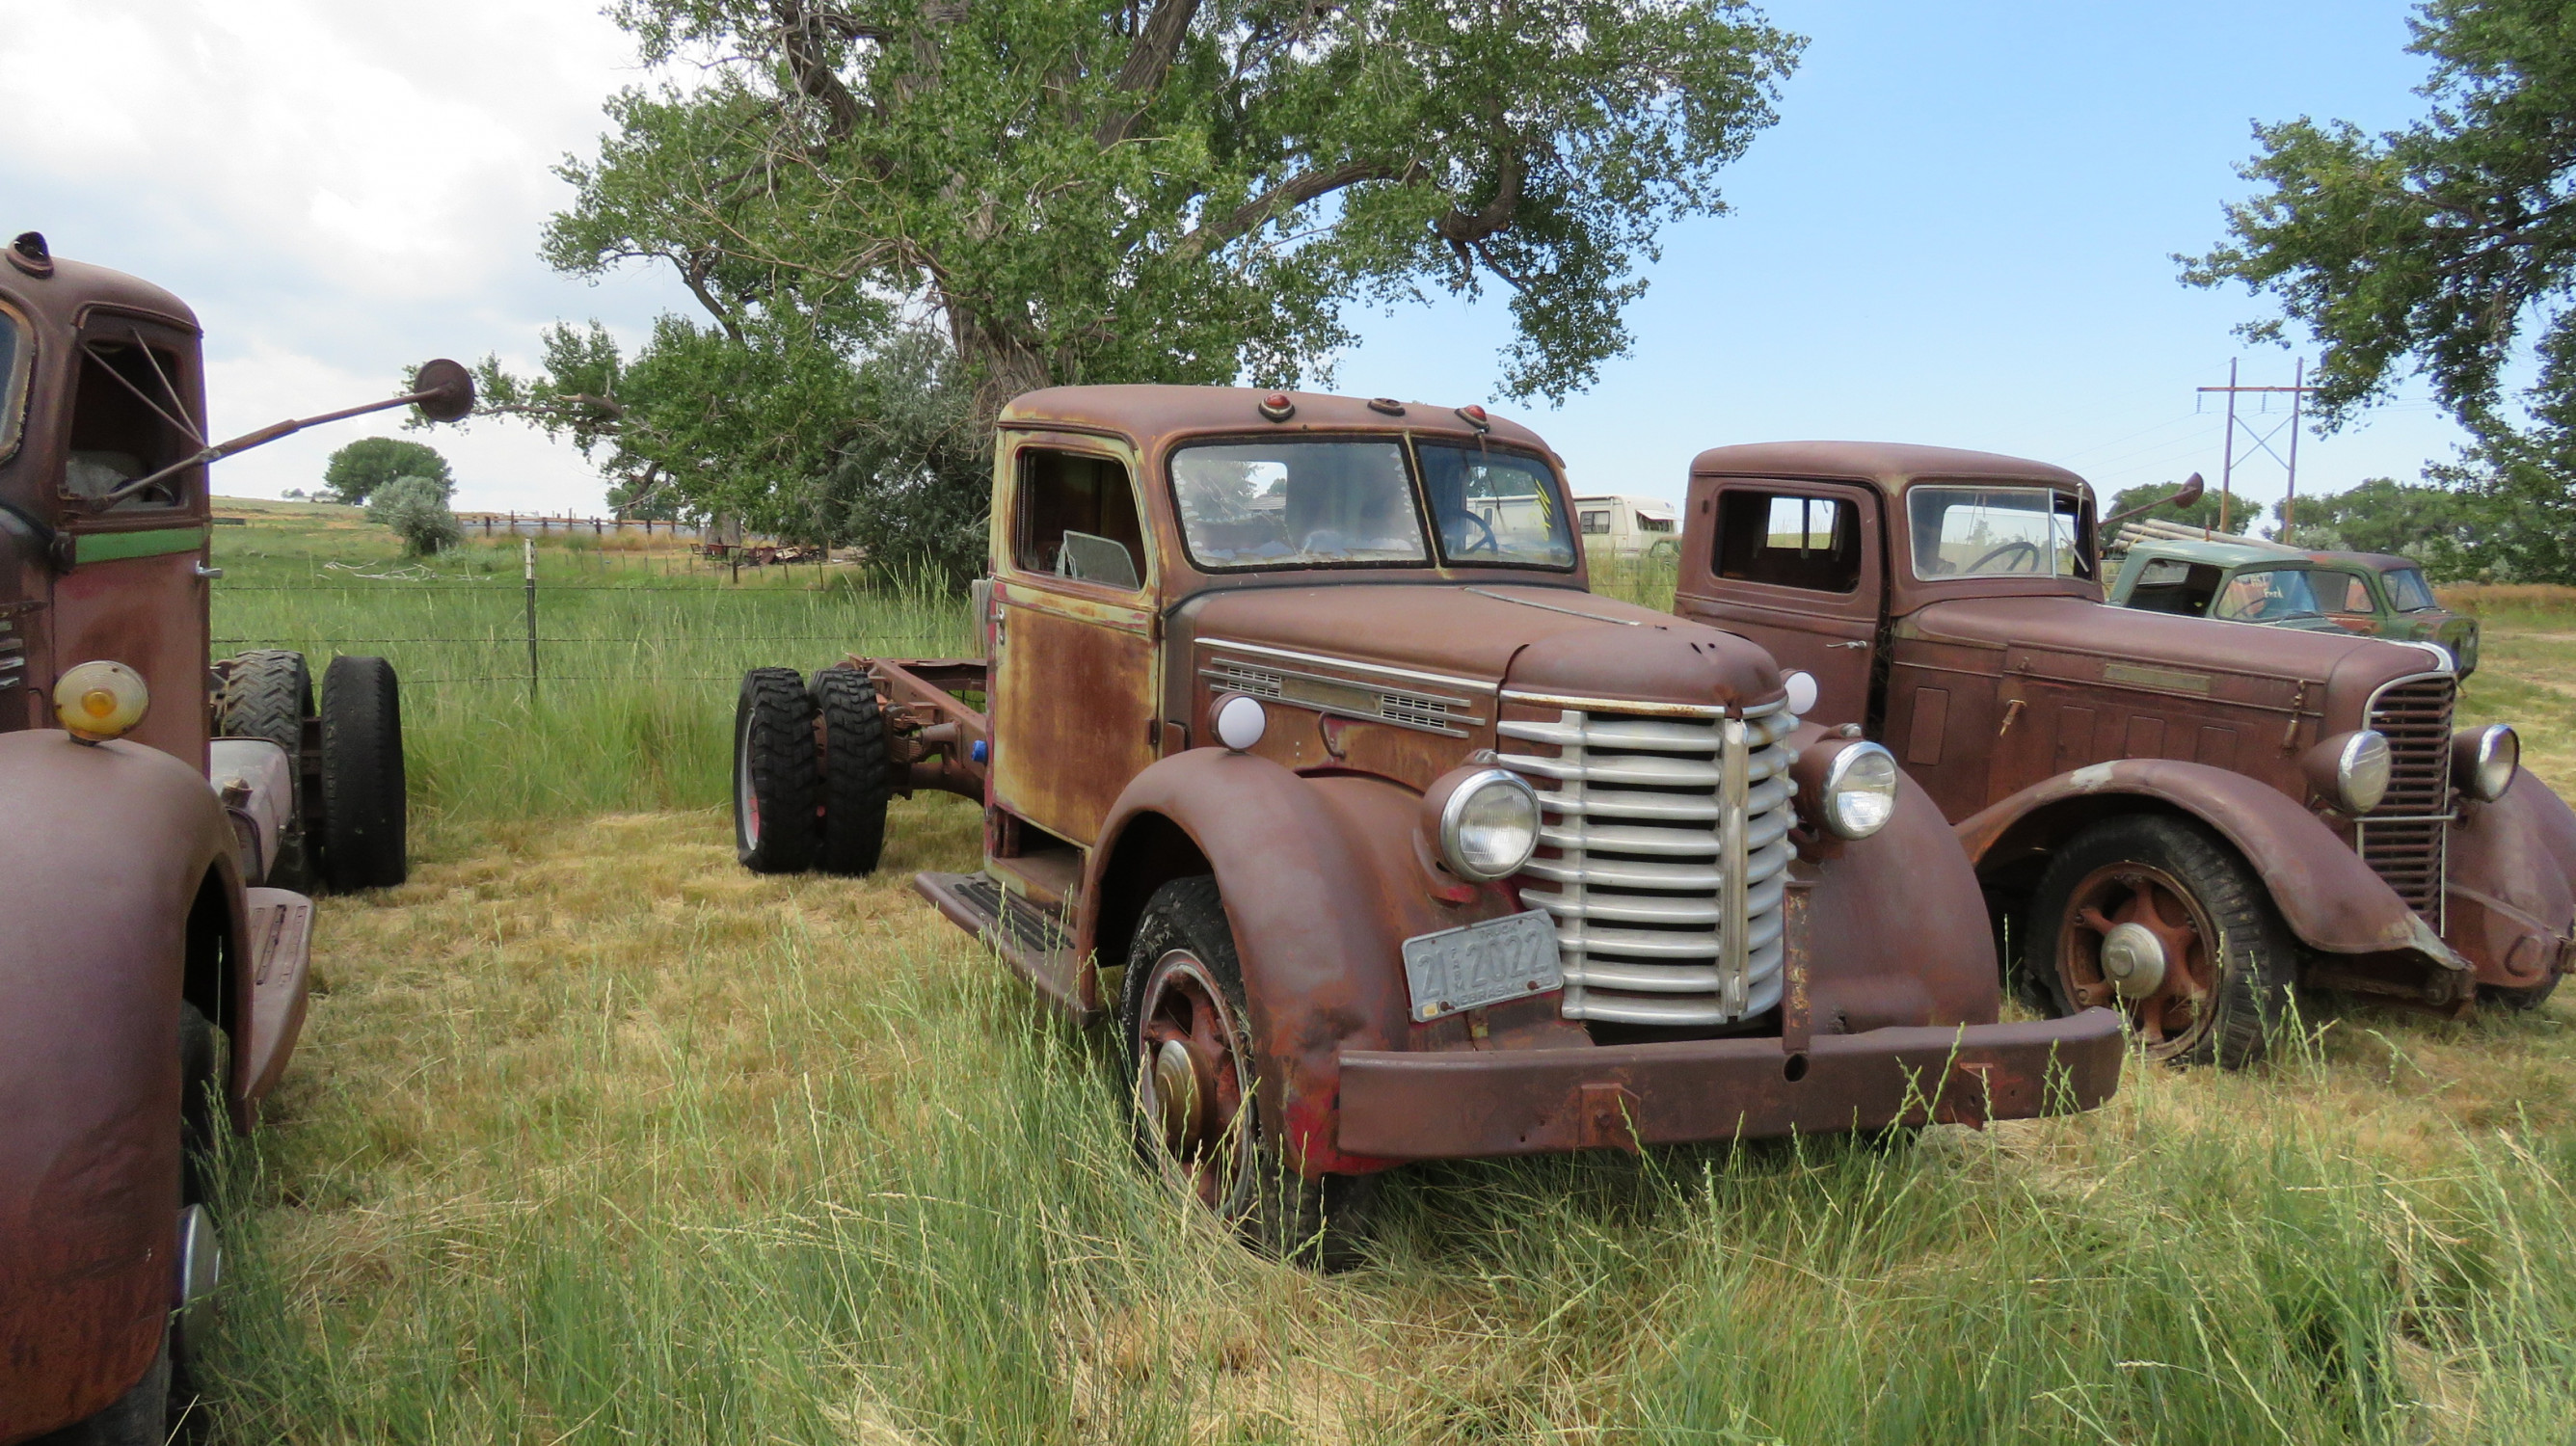 1939 DIAMOND T TRUCK FOR ROD OR RESTORE - Image 2